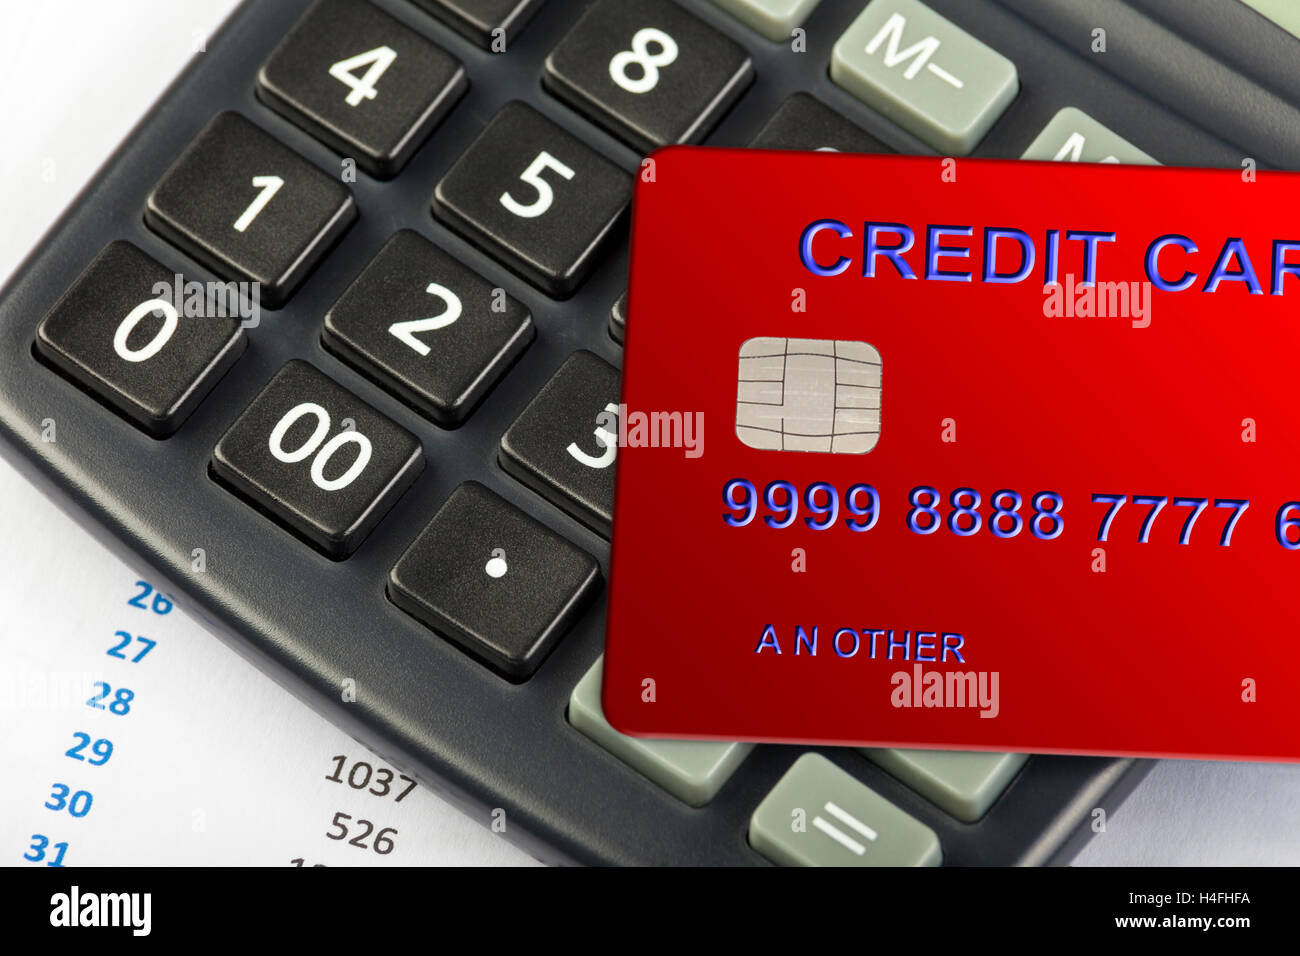 Red credit card laying on a calculator keypad with a spreadsheet on show - Stock Image